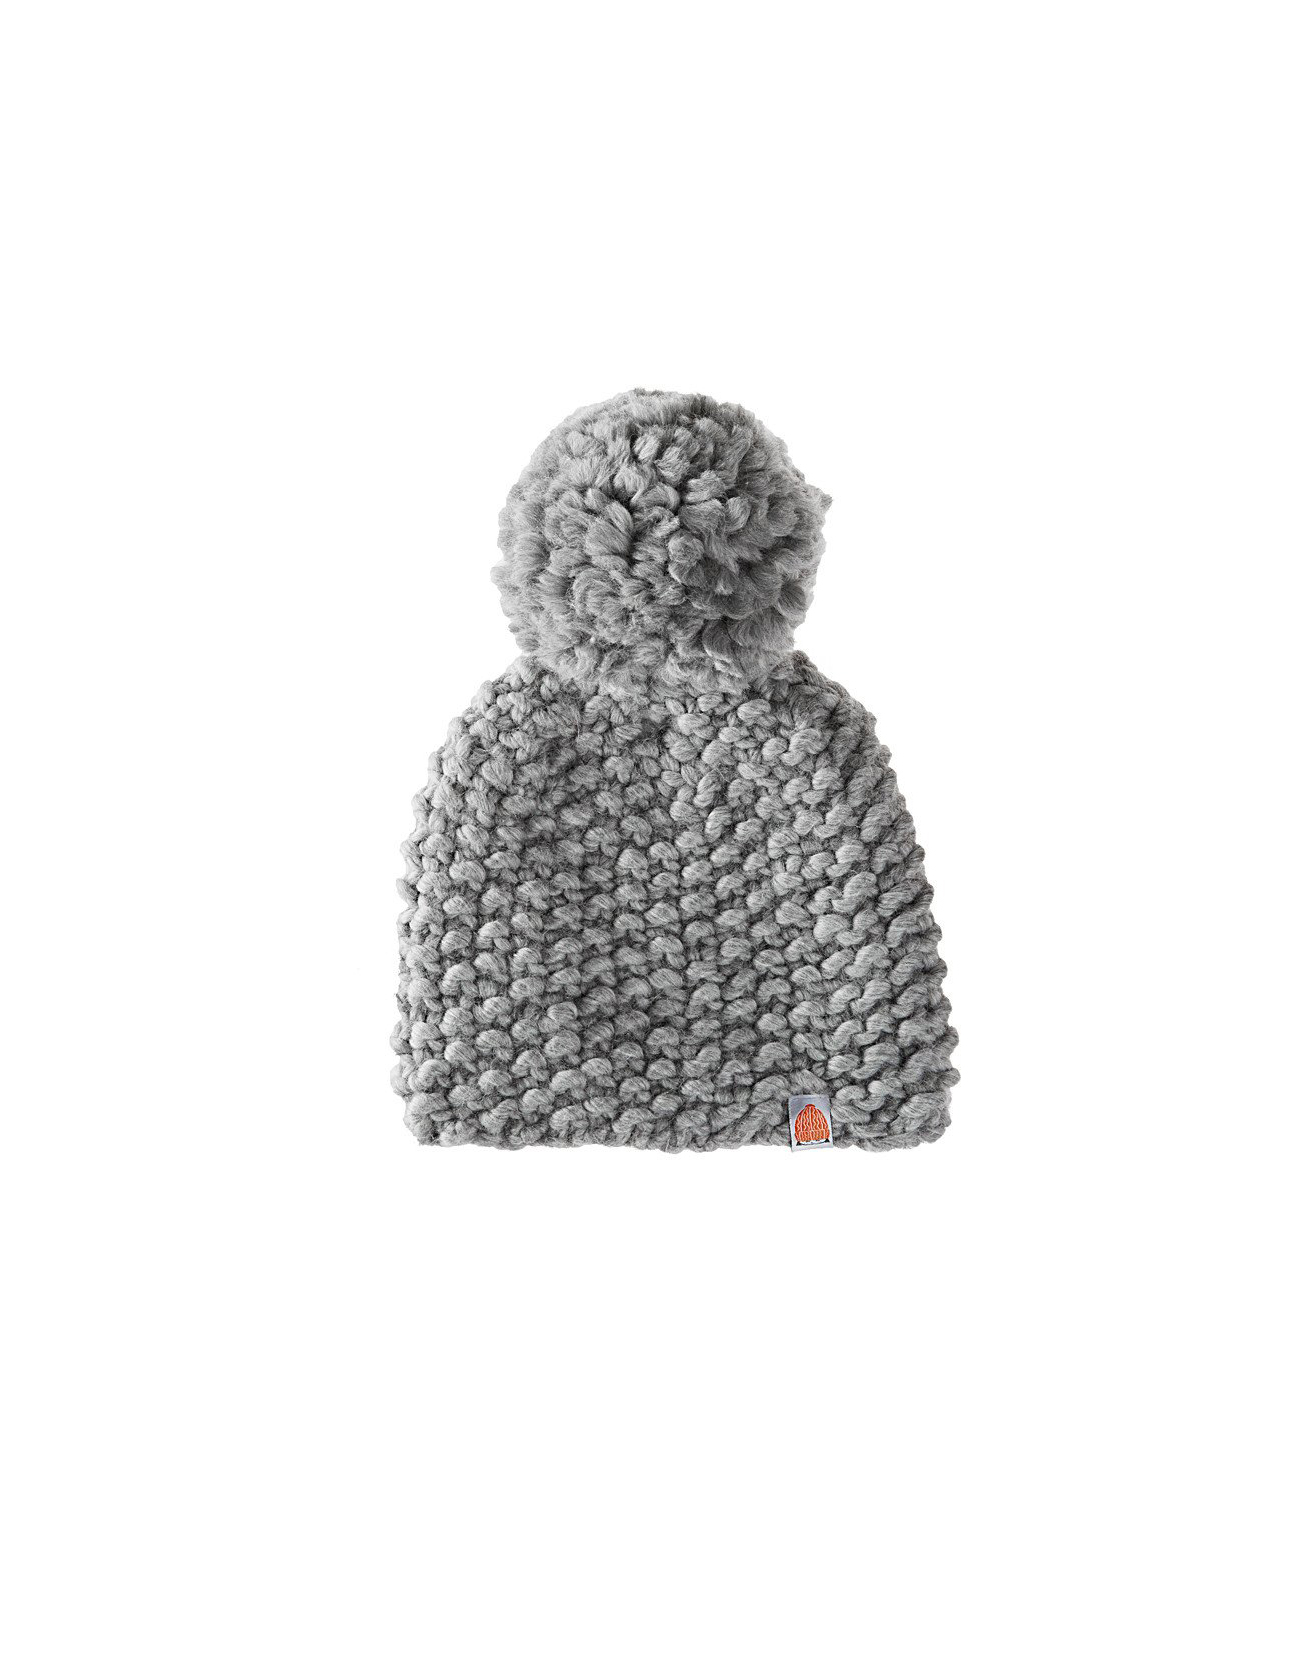 Cozy Must-haves for fall and winter Sh*t That I Knit Mackeen Beanie in Heather